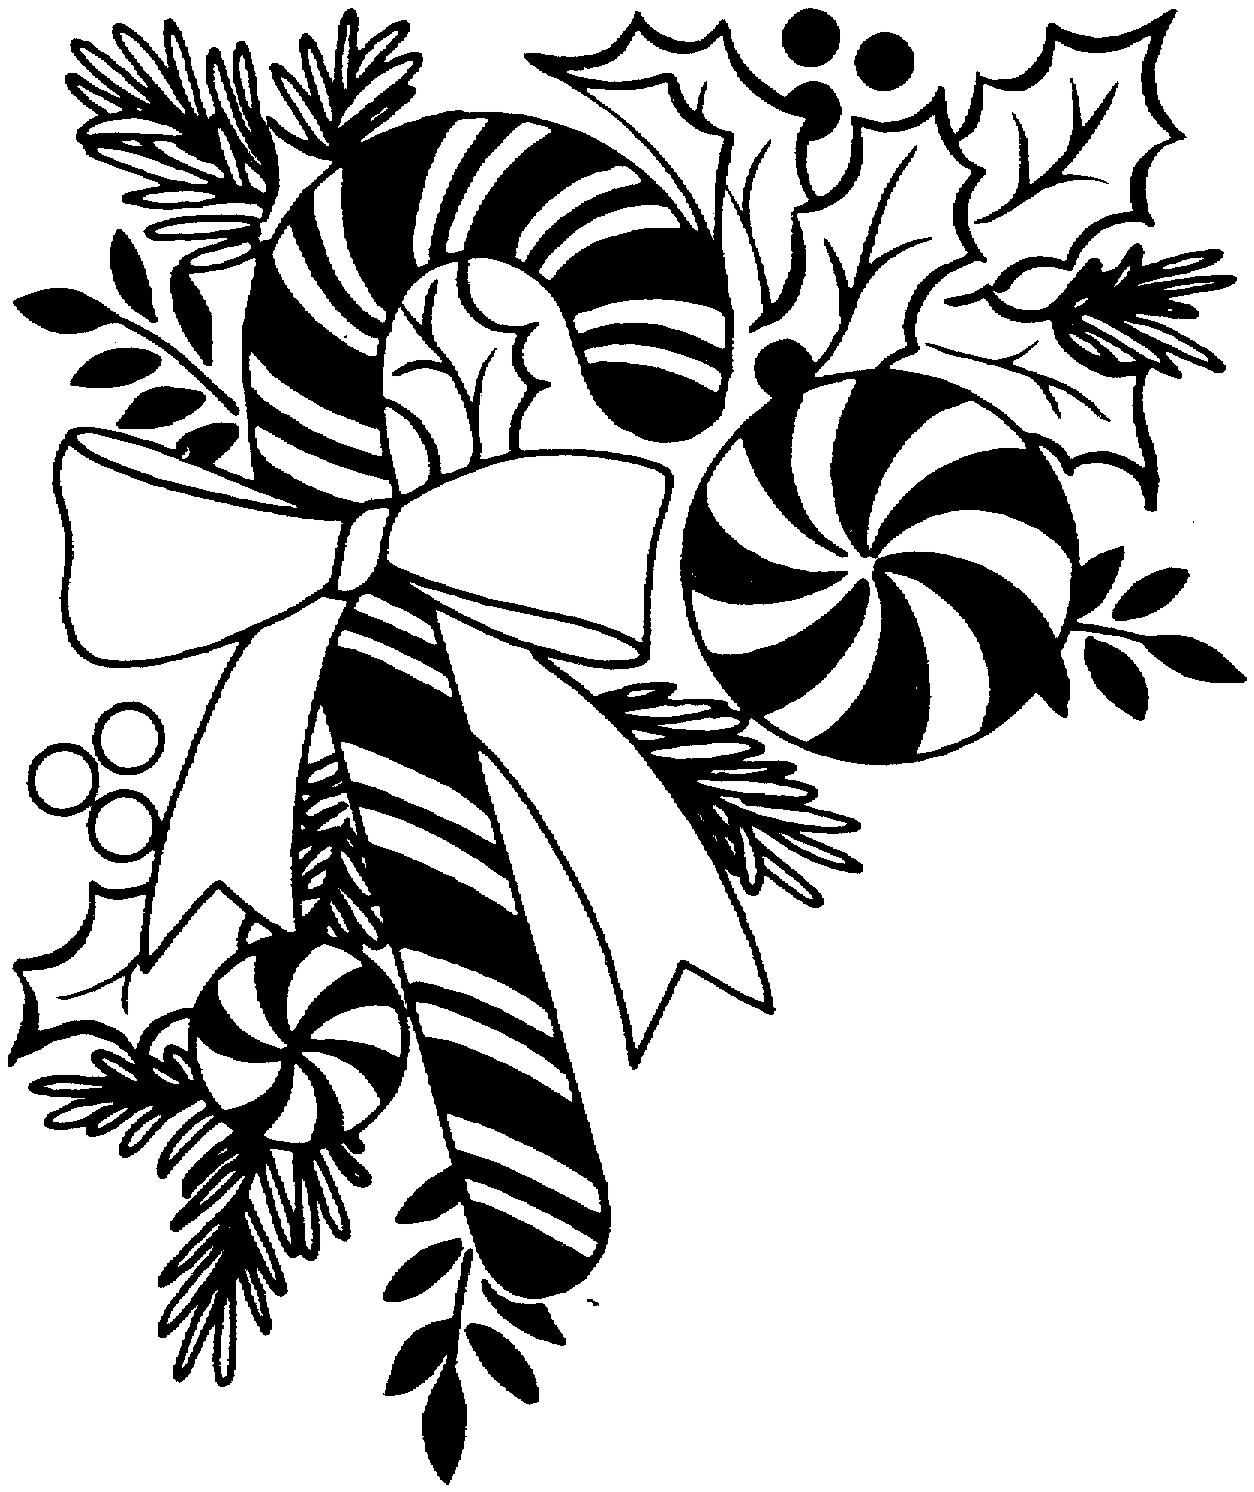 1254x1492 Christmas Black And White Clipart